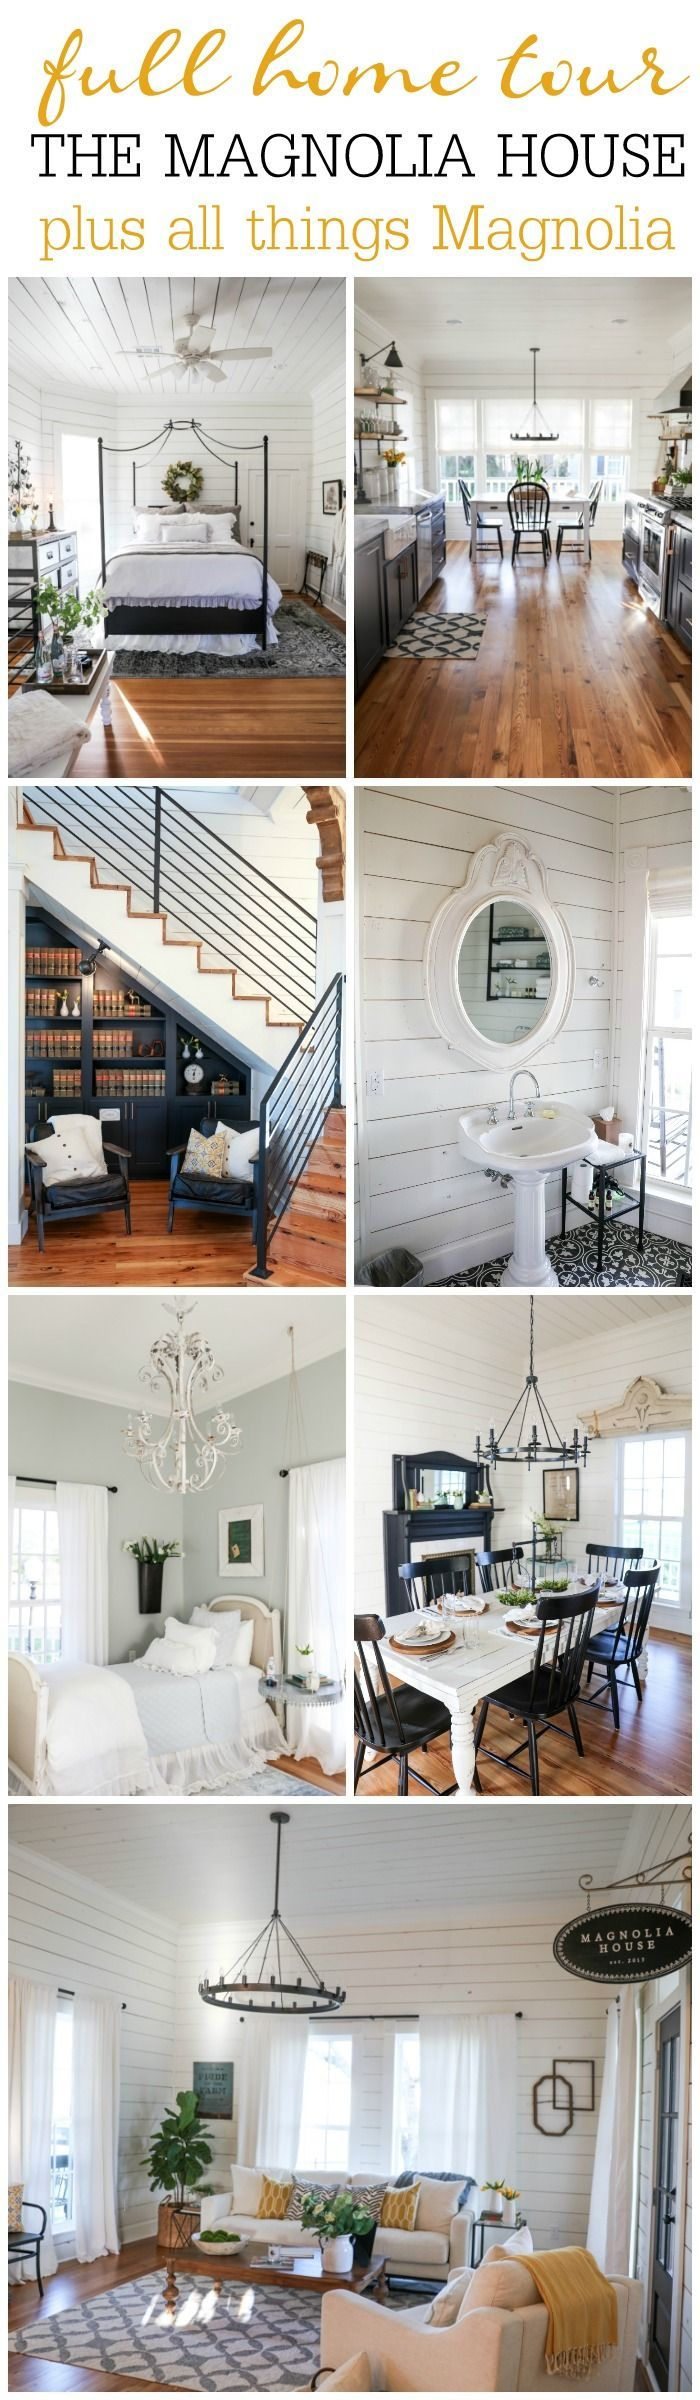 """Full Home Tour of the Magnolia House plus all the info about Waco and how to get the full """"Magnolia Experience""""."""